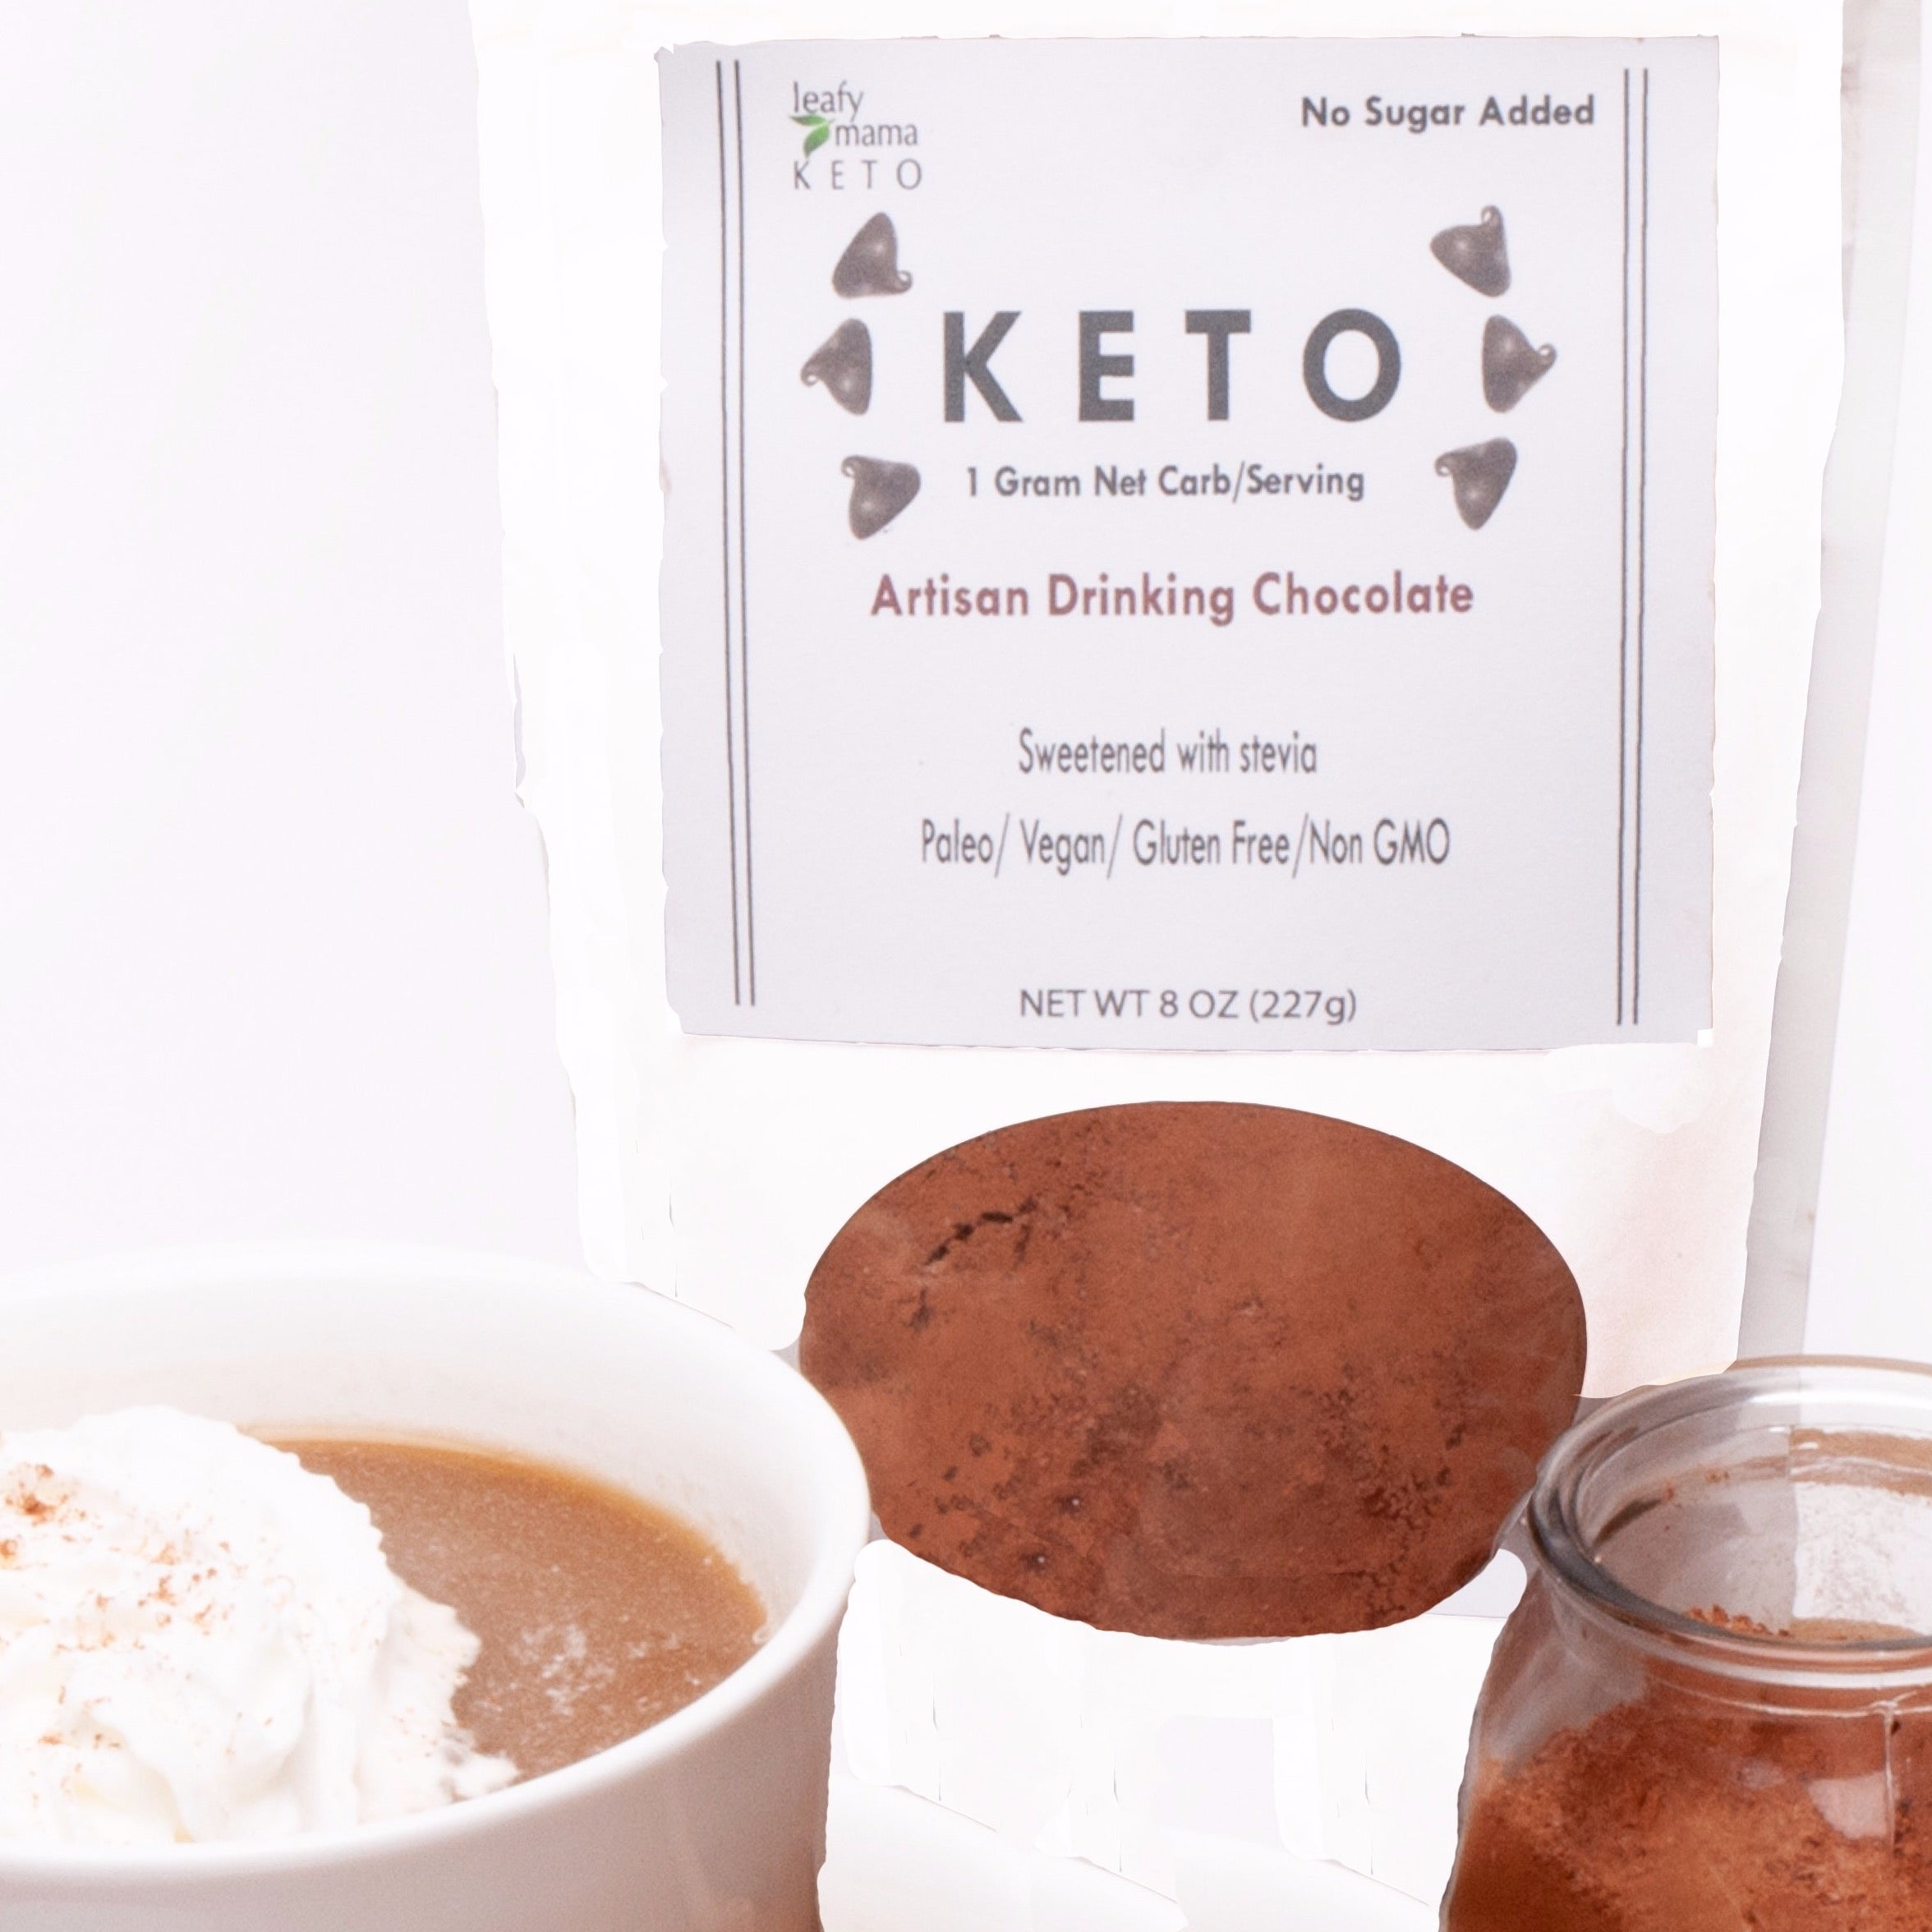 Keto Artisanal Drinking Chocolate